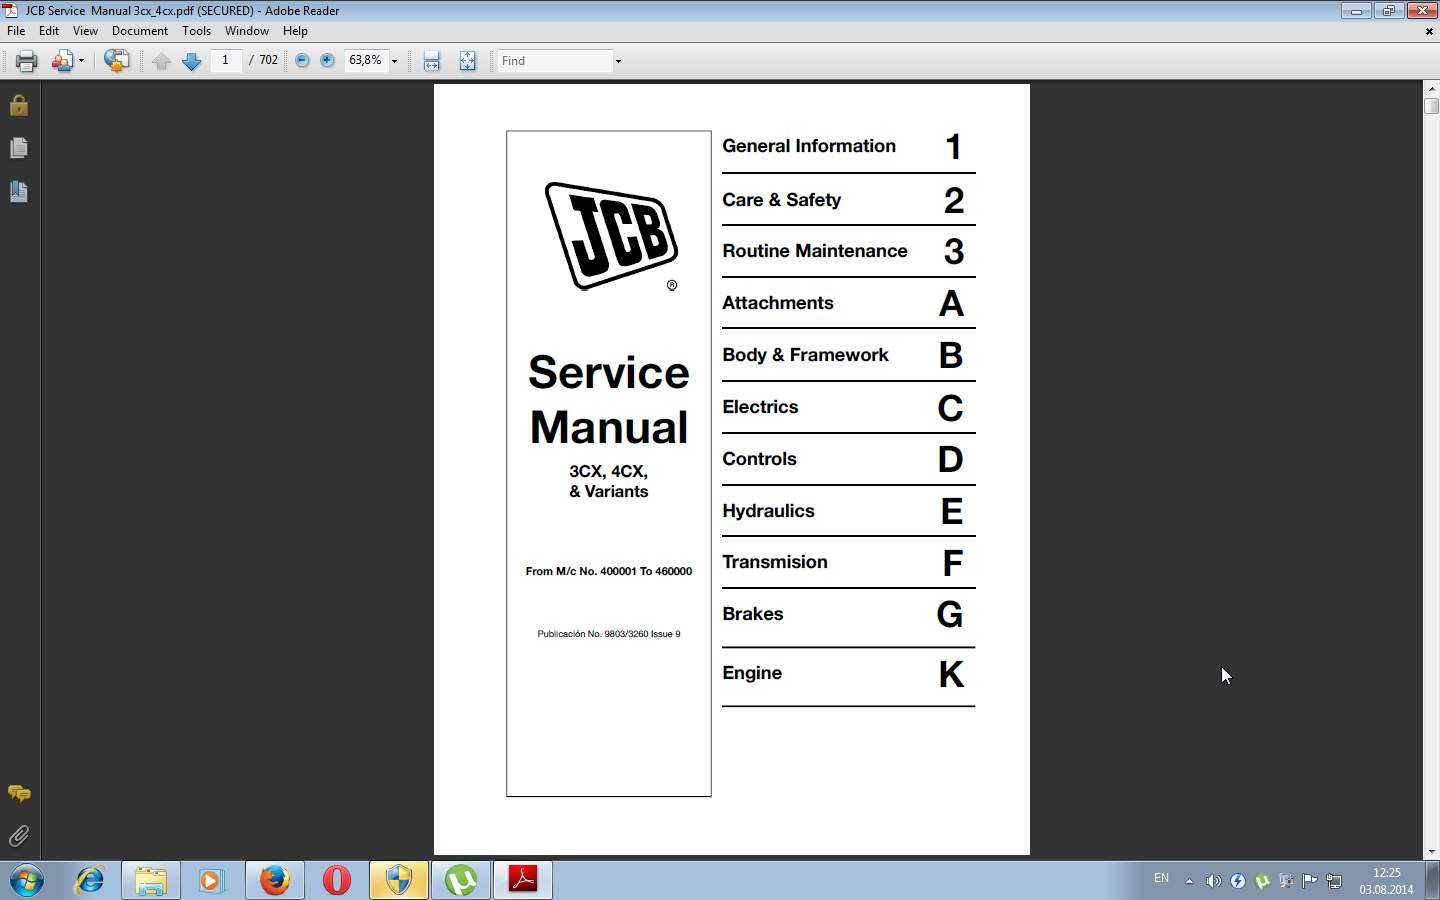 Jcb Service Manuals Repair,Schematics & Workshop All Models Extra Price on